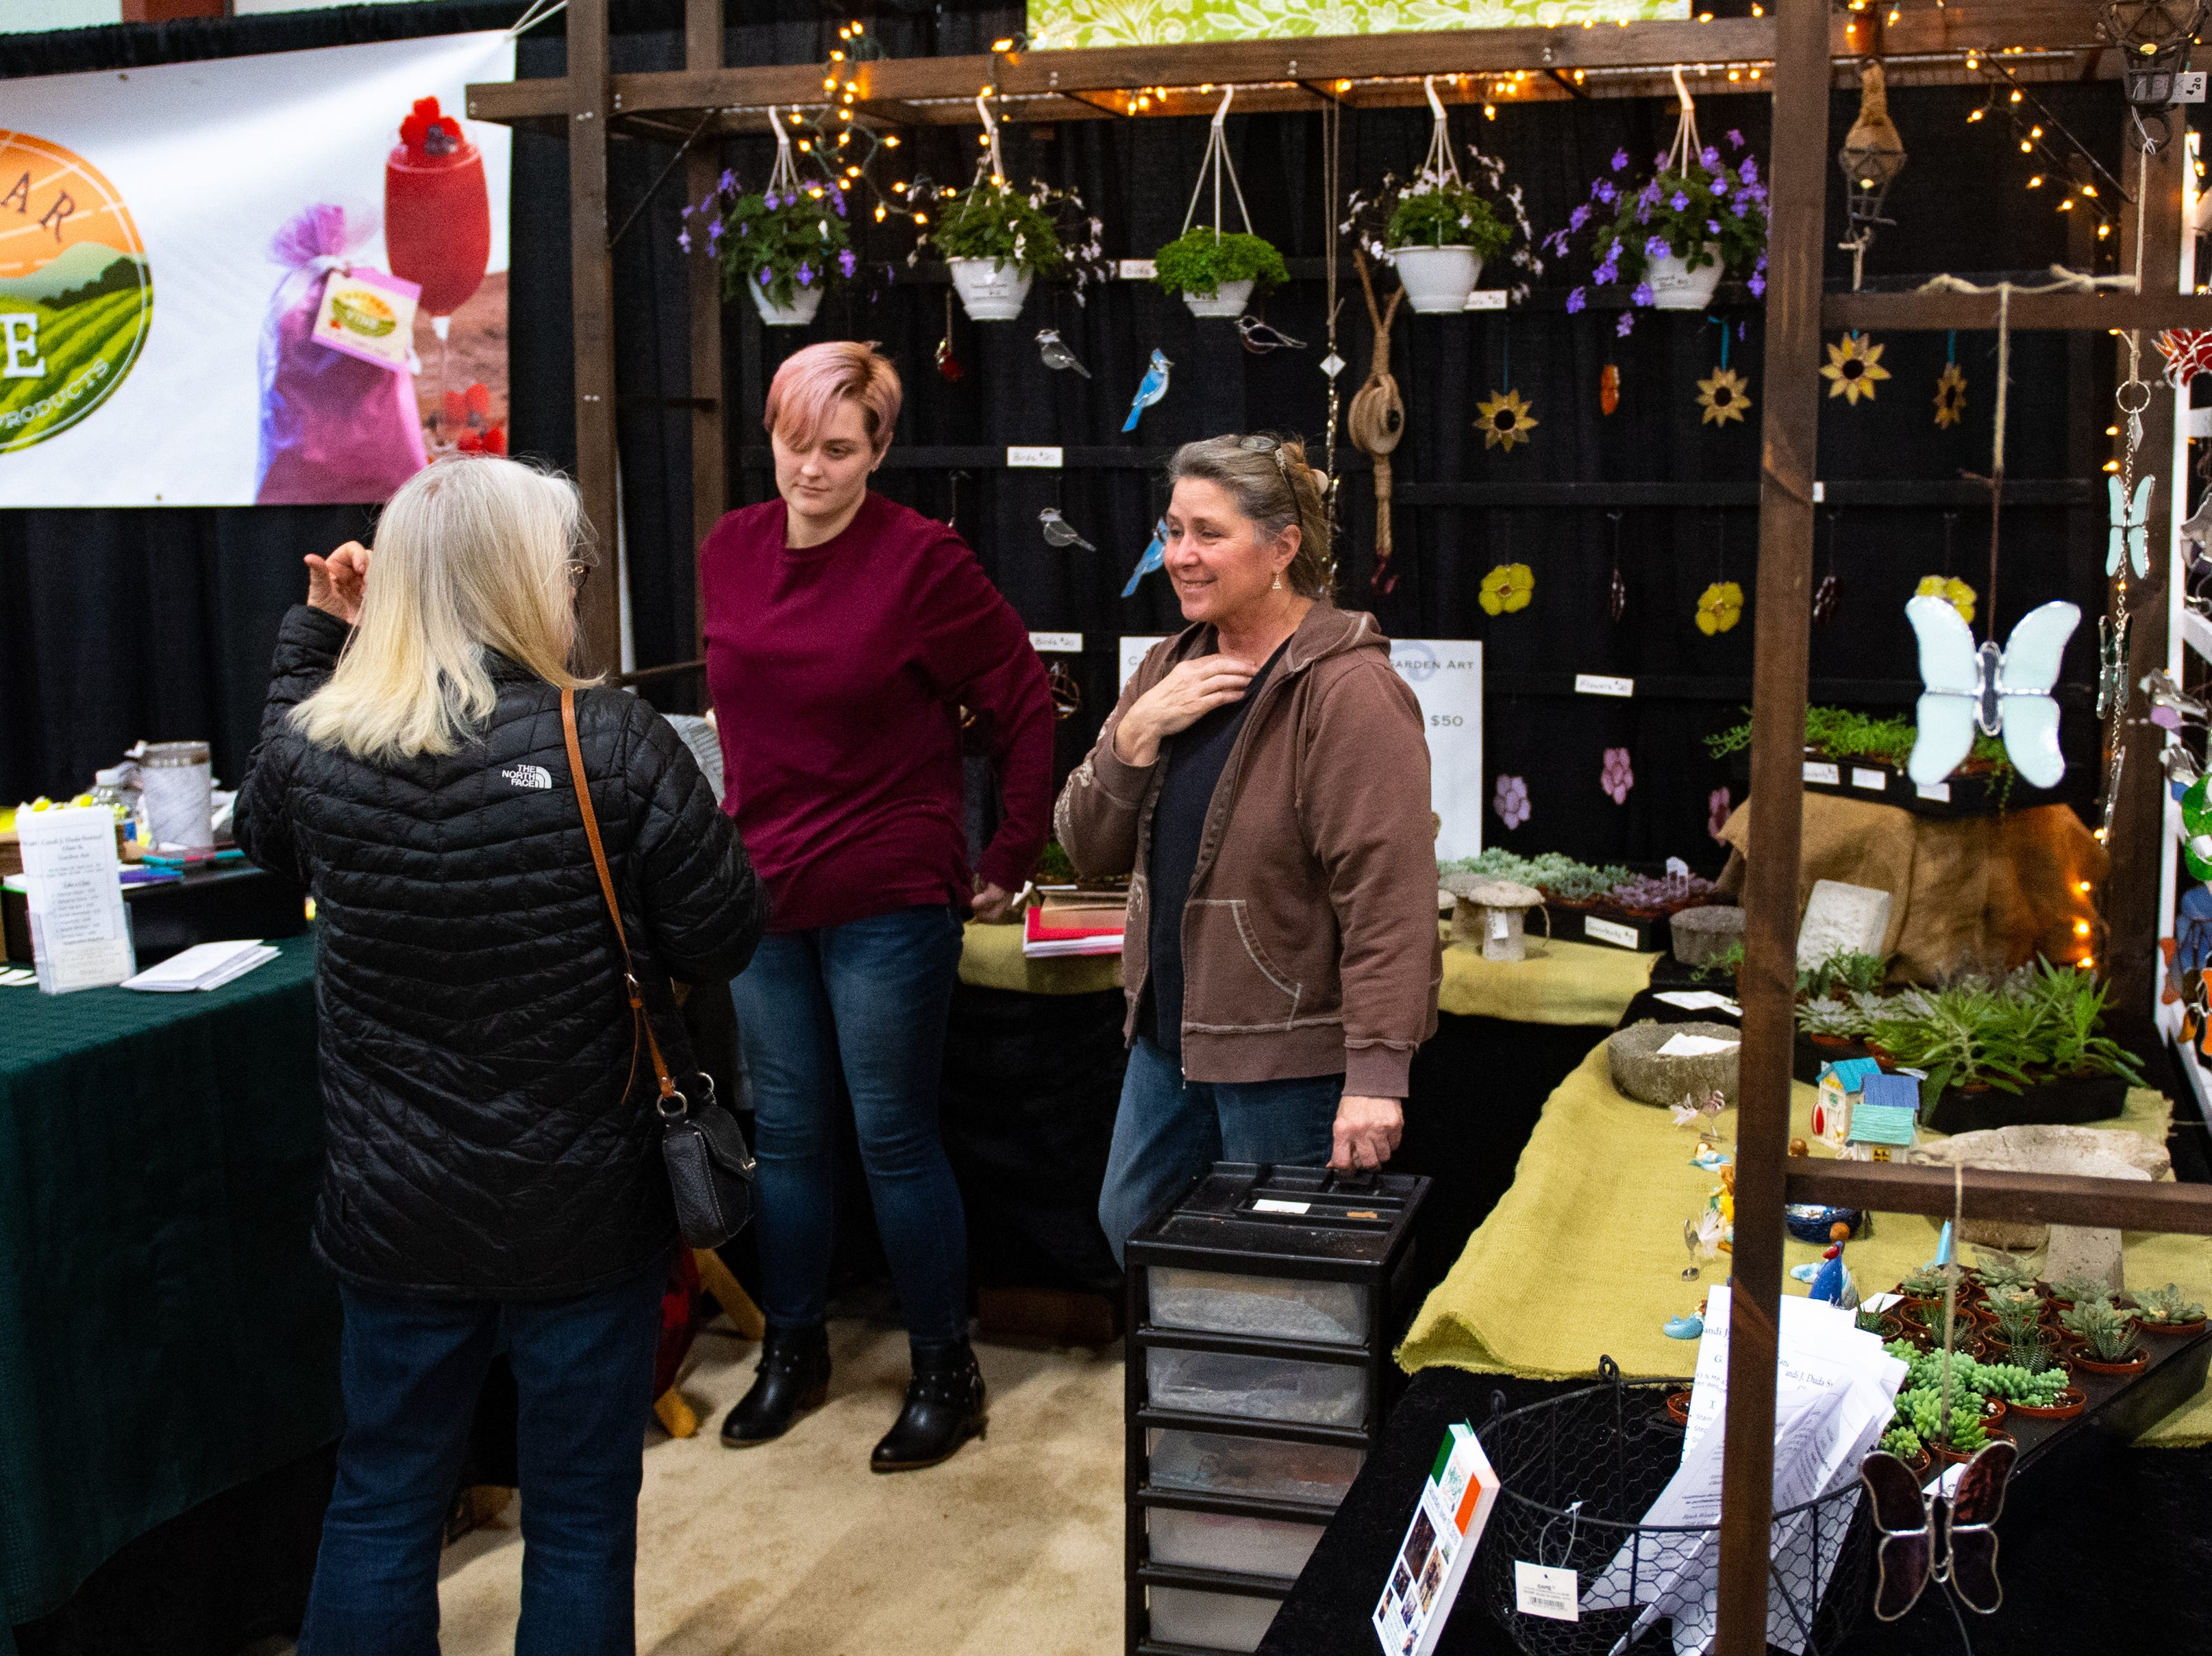 Each booth has unusual trinkets, foods, supplies or other household needs just begging to be taken home during the 2019 Home & Garden Show at the York Expo Center Utz Arena. It continues Saturday and Sunday.